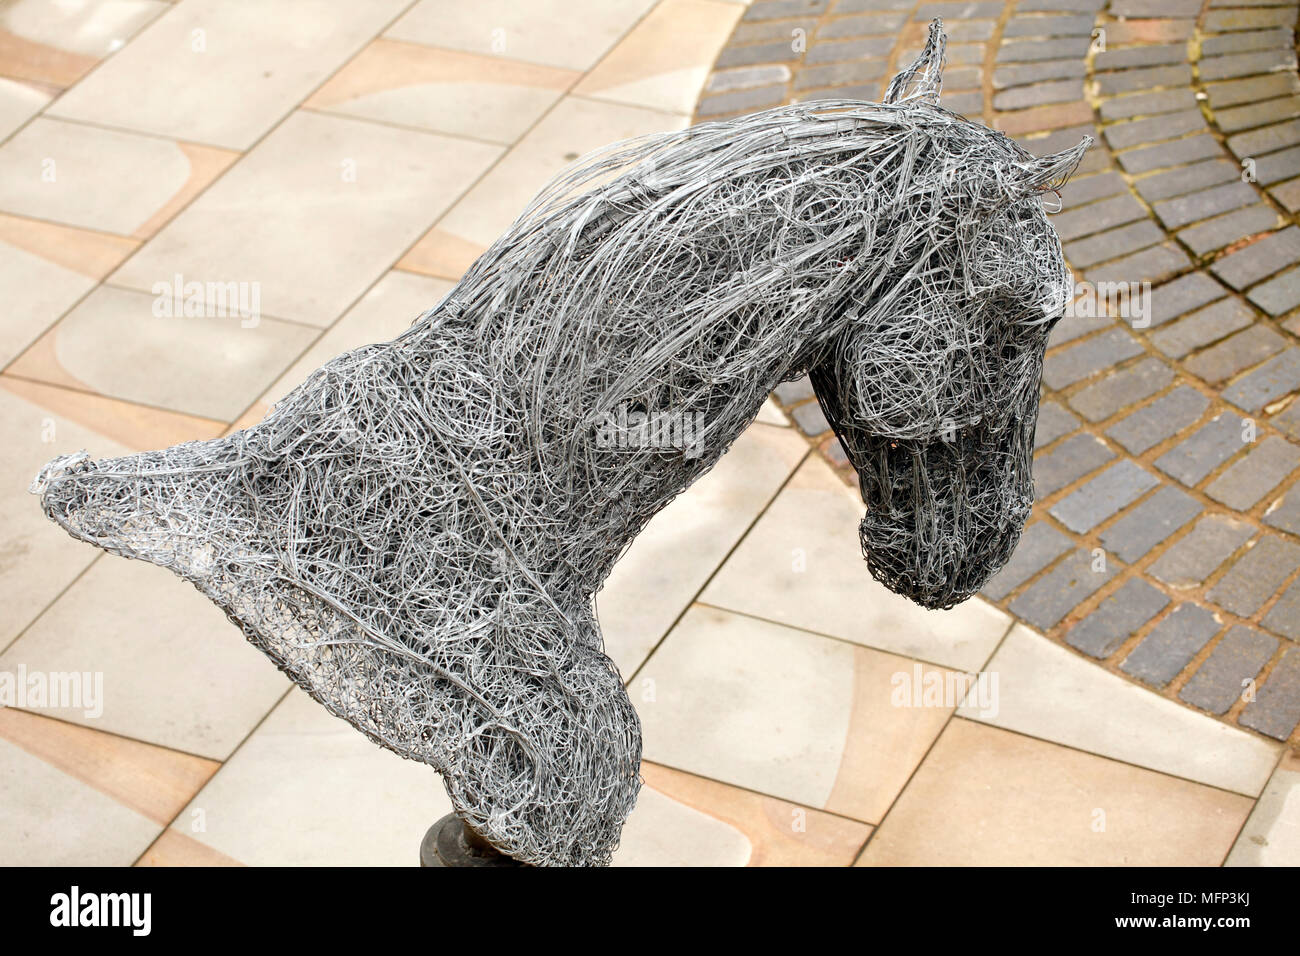 Sculpture Of A Horse Head By Rupert Till In Wire Stock Photo Alamy